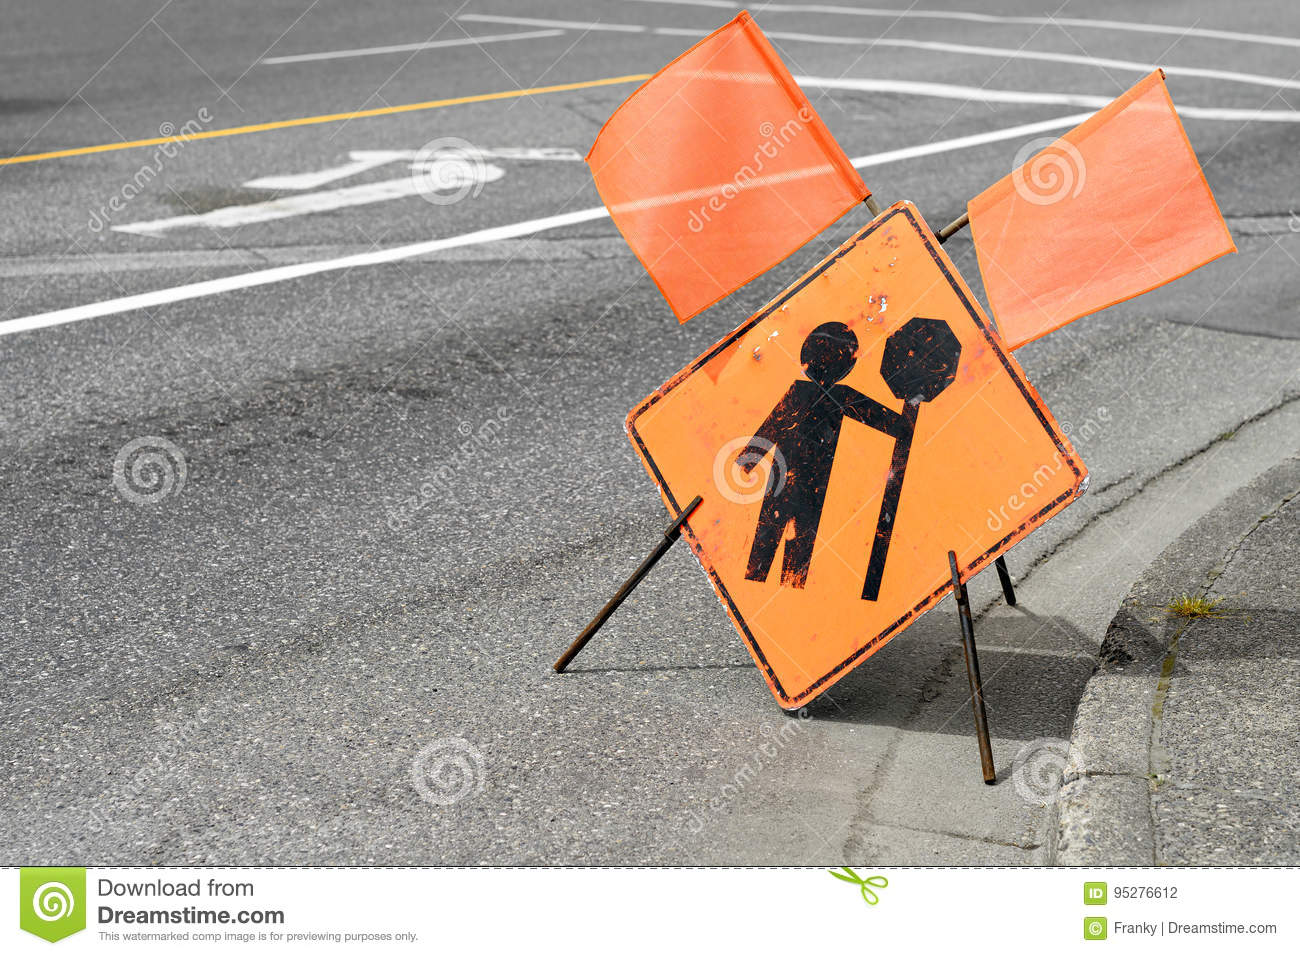 Construction flagger ahead sign